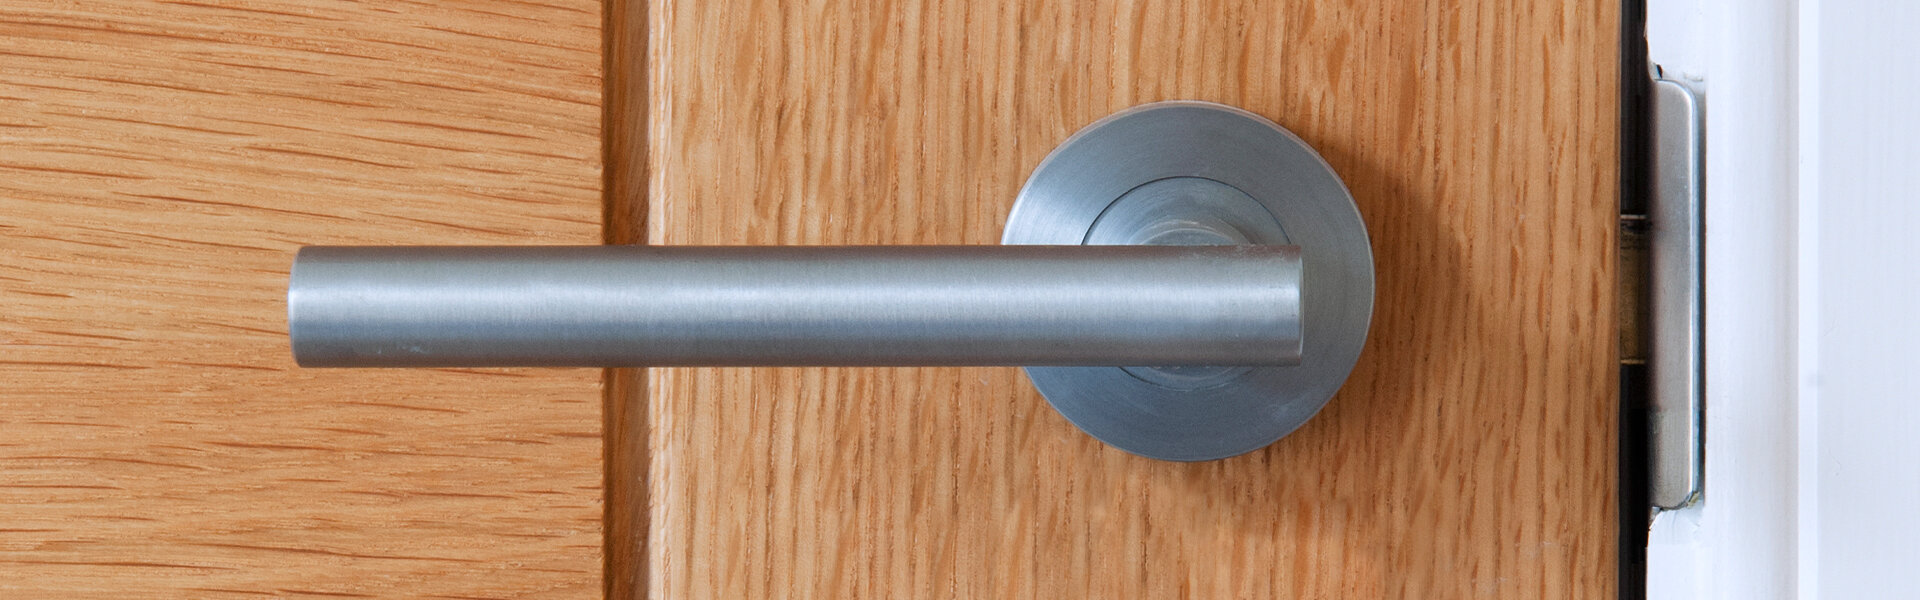 Photo of a door handle